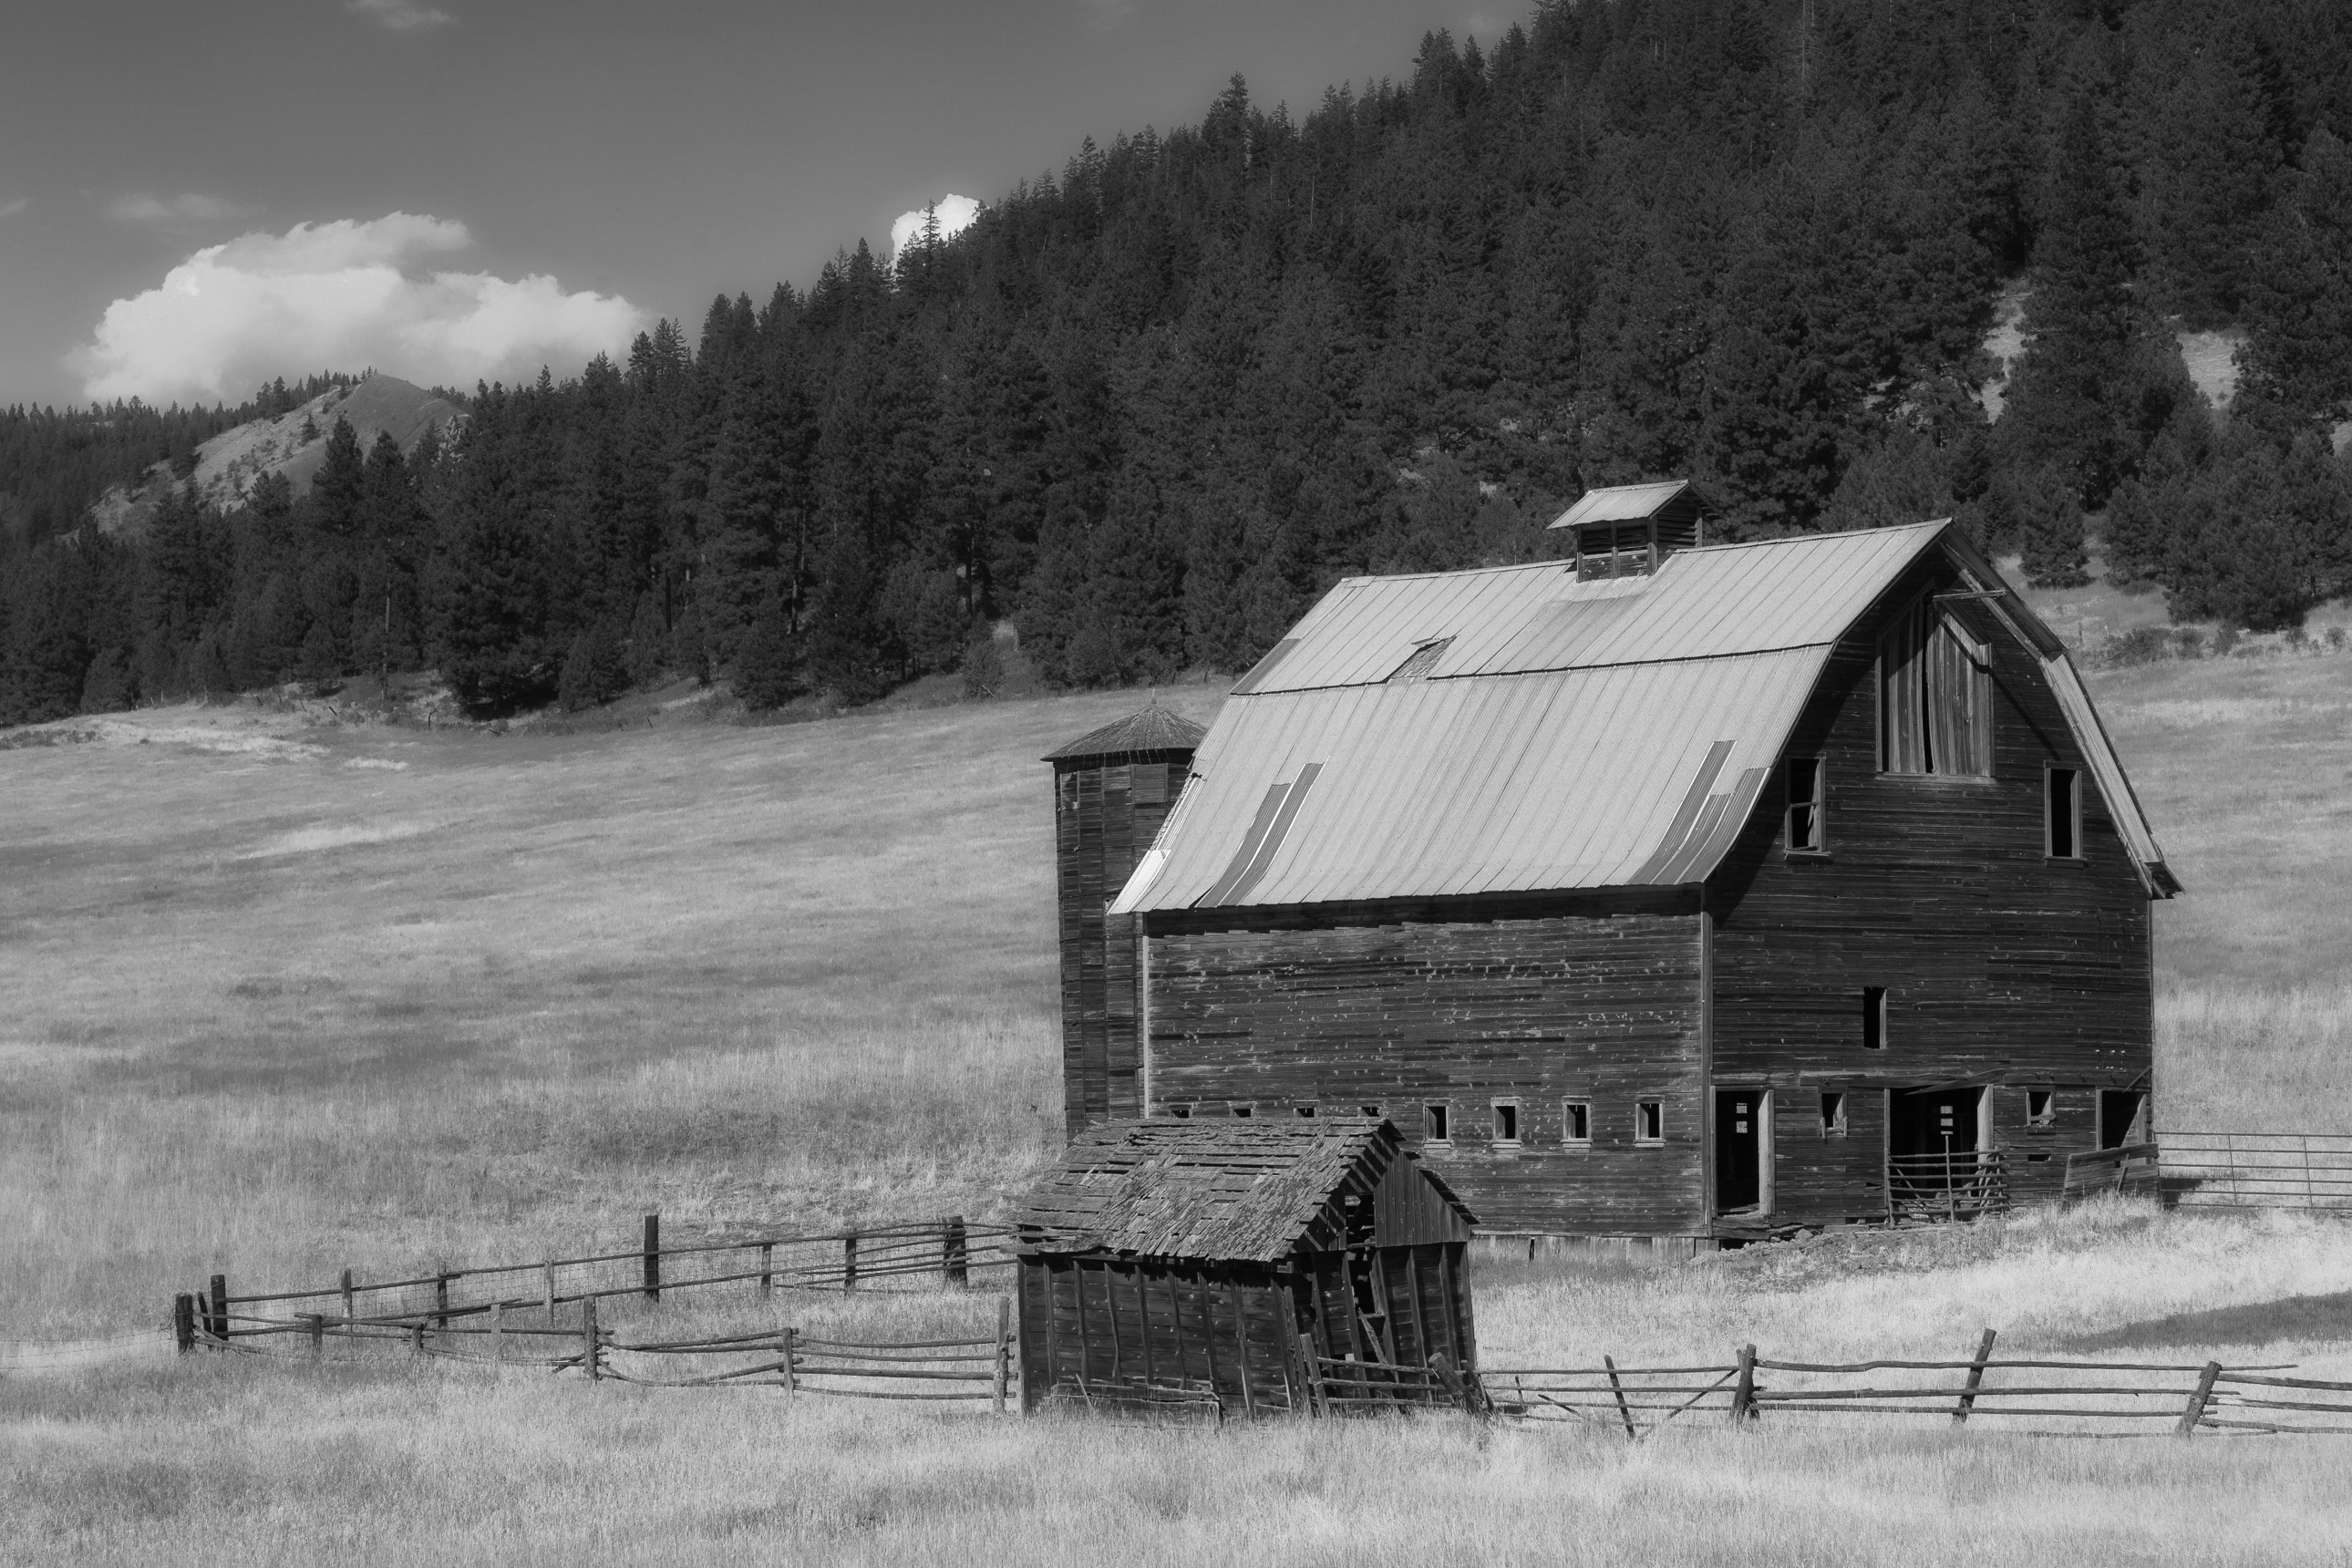 Old barn near Cle Elum Washington